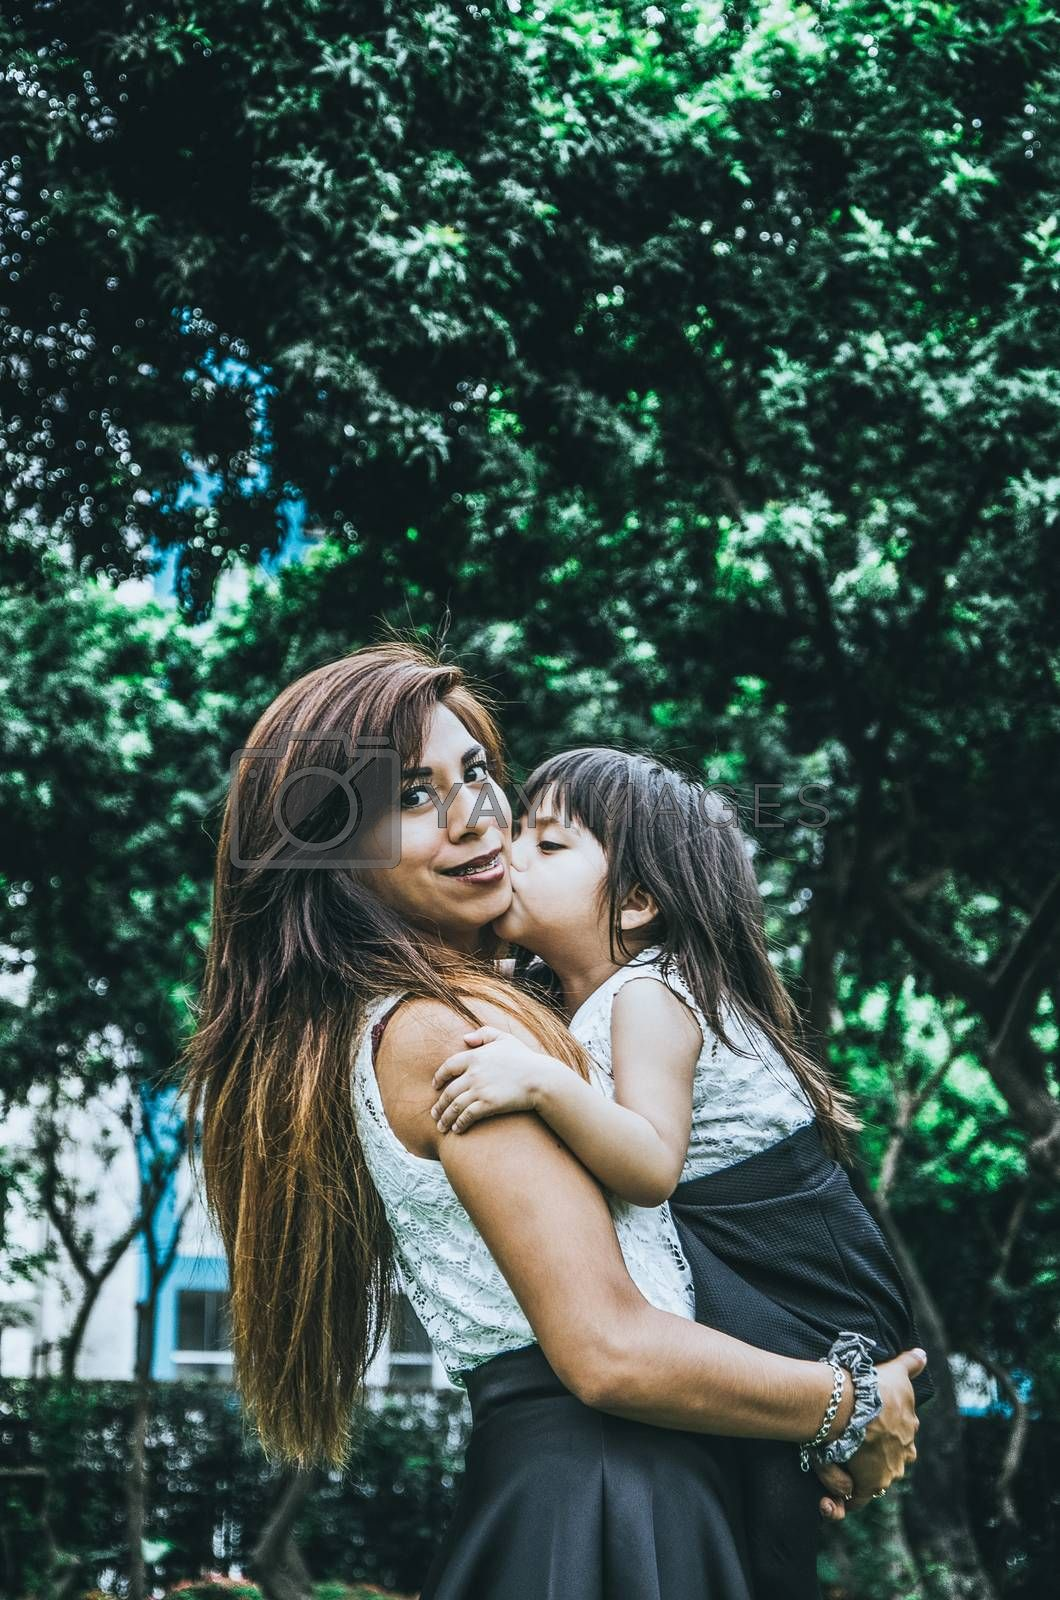 Happy Mother's Day. The little girl kisses her on the cheek